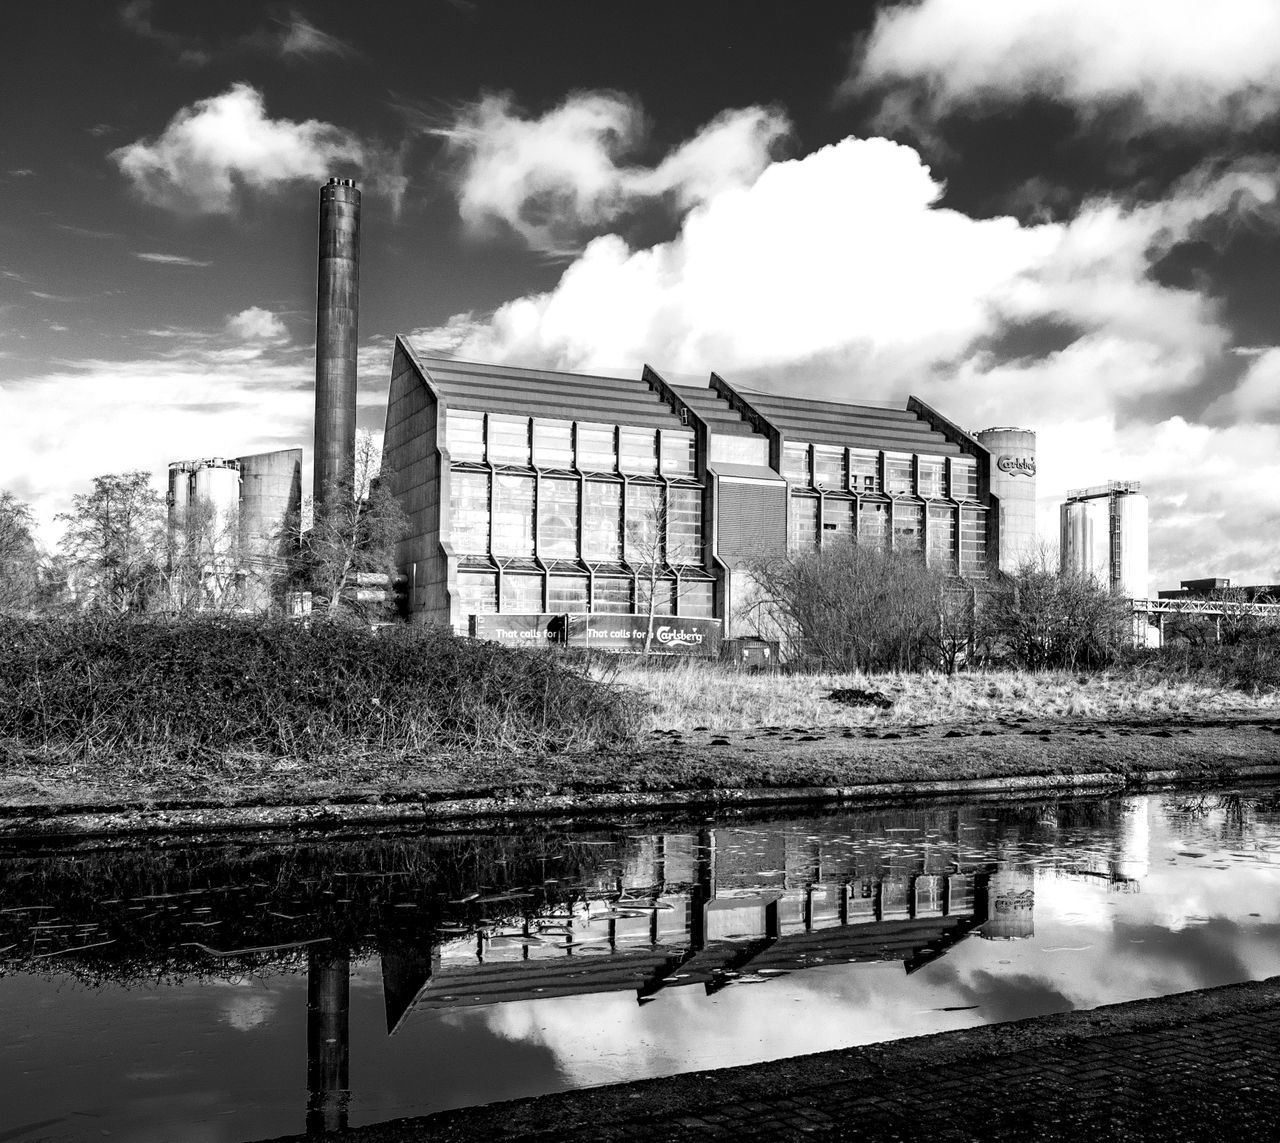 Carlsberg Brewery, Northampton Brewery Canal Grand Union Canal Carlsberg Architecture FUJIFILM X-T2 Black And White Monochrome Monochrome Photography Northampton Built Structure Industrial Landscapes